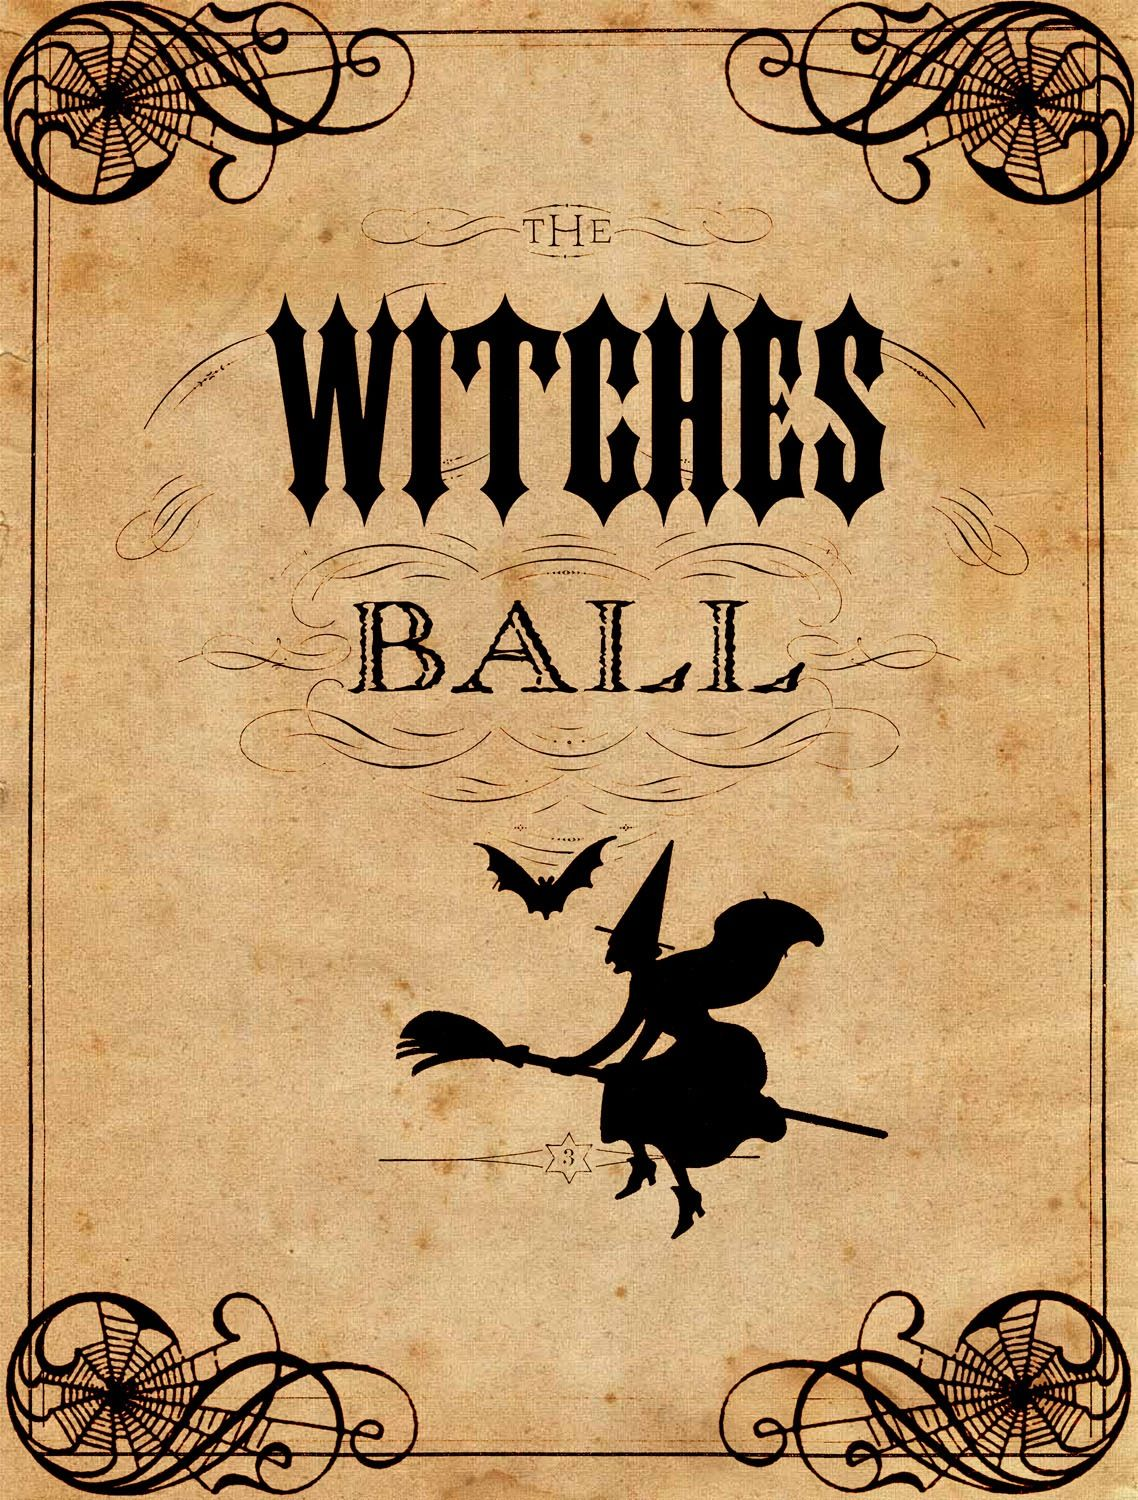 Witche's Ball | Halloween | Pinterest | Vintage and Witches